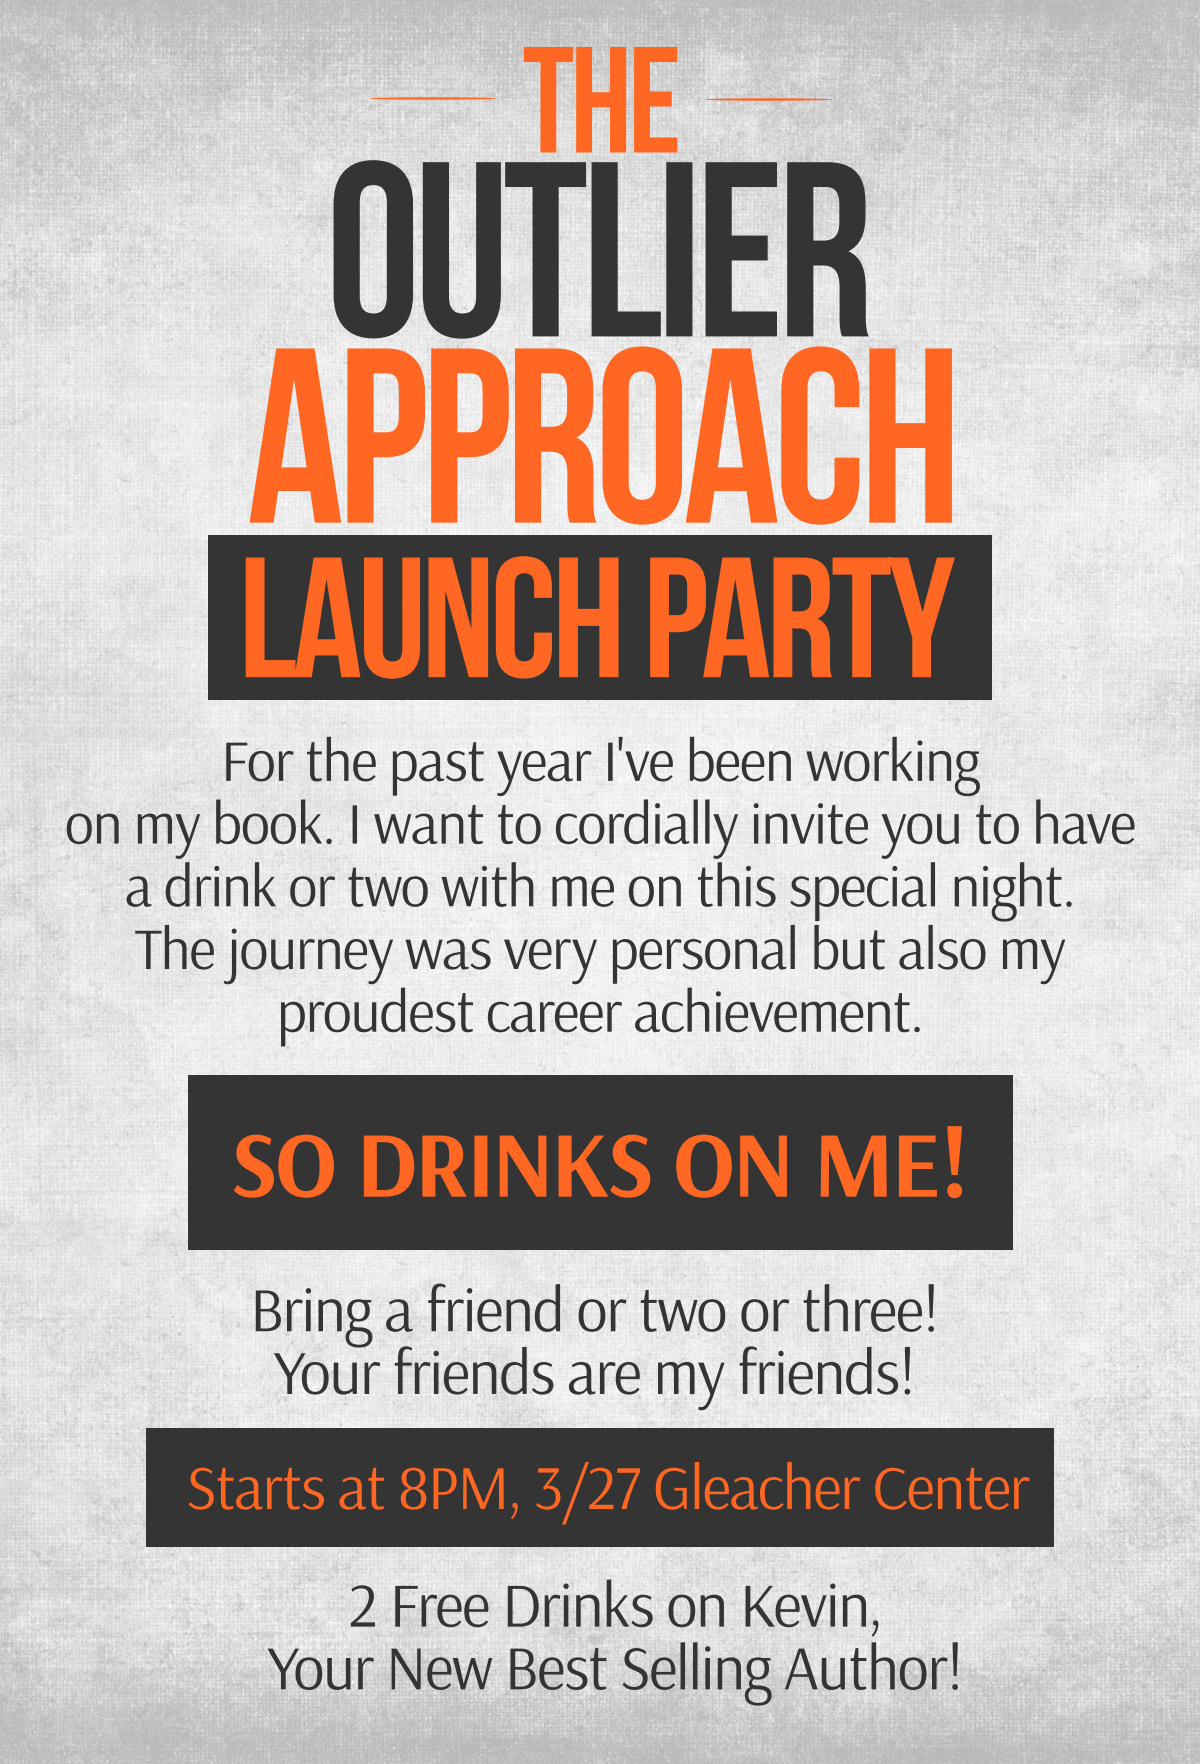 The Outlier Approach Book Launch Party (Please get back to me in 24 hours)